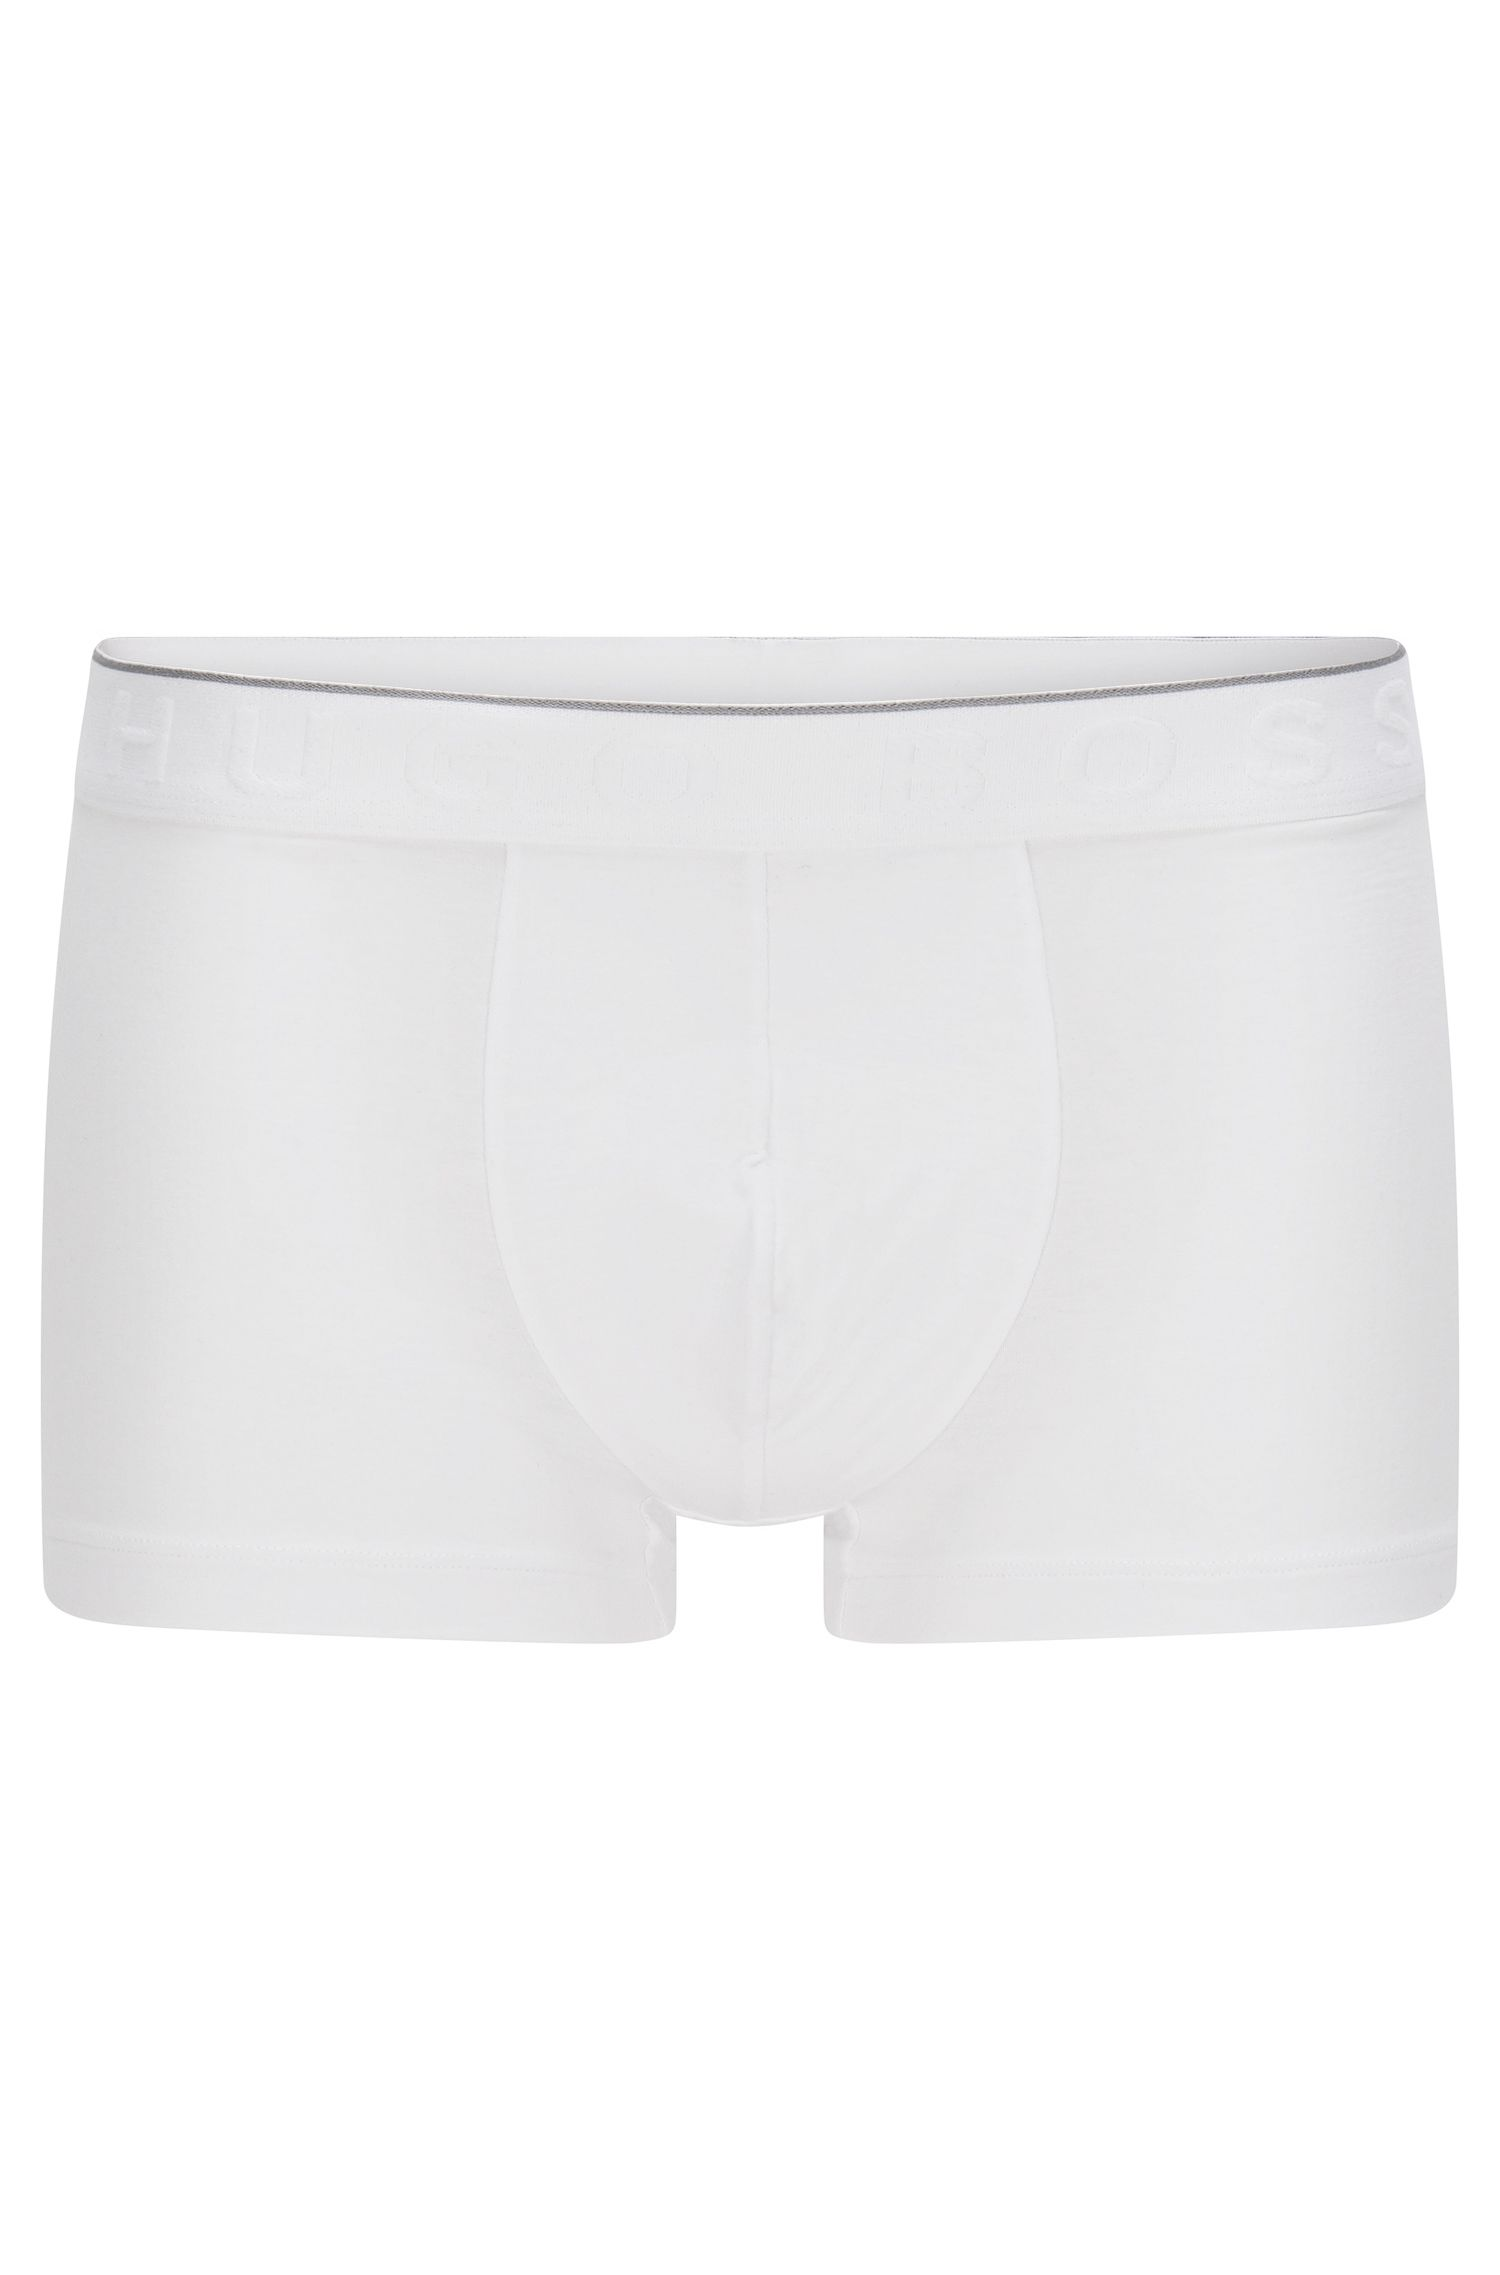 Travel Line boxer shorts in stretch modal blend with lyocell: 'Trunk Seacell'